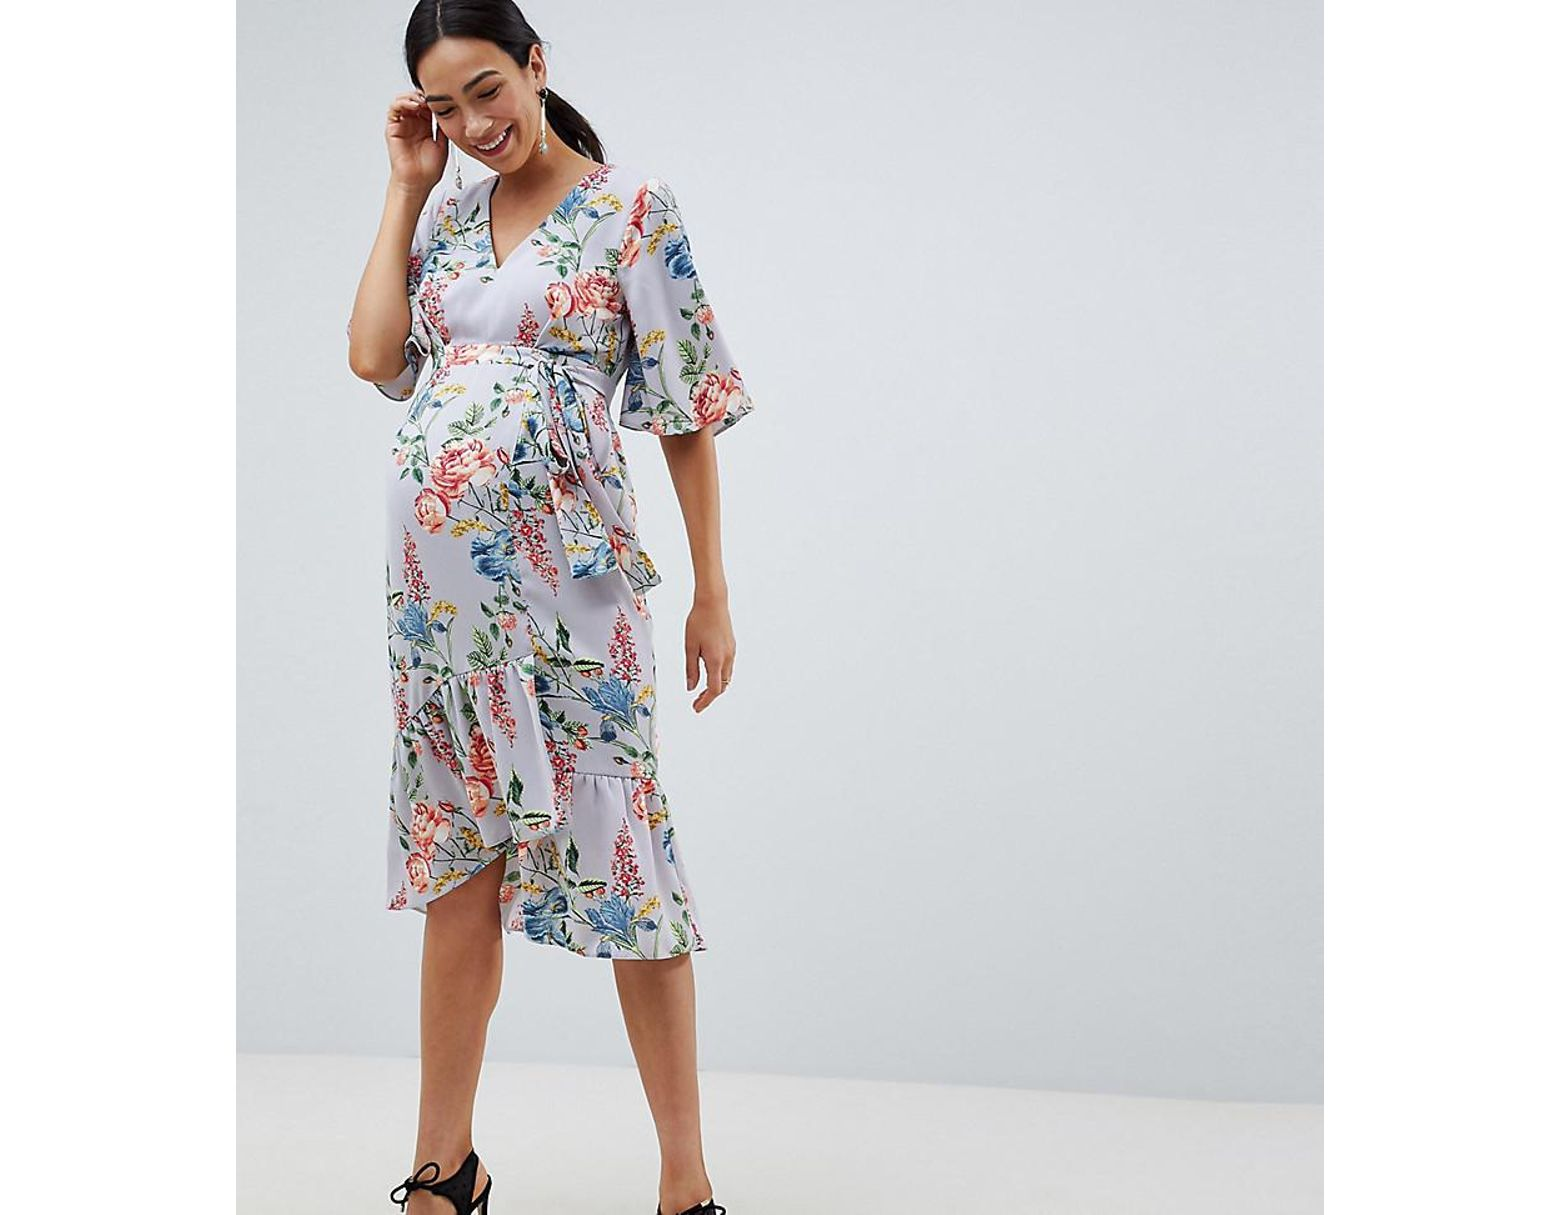 87afff98ce9e4 ASOS Asos Design Maternity Floral Print Kimono Sleeve Wrap Midi Dress in  Blue - Lyst